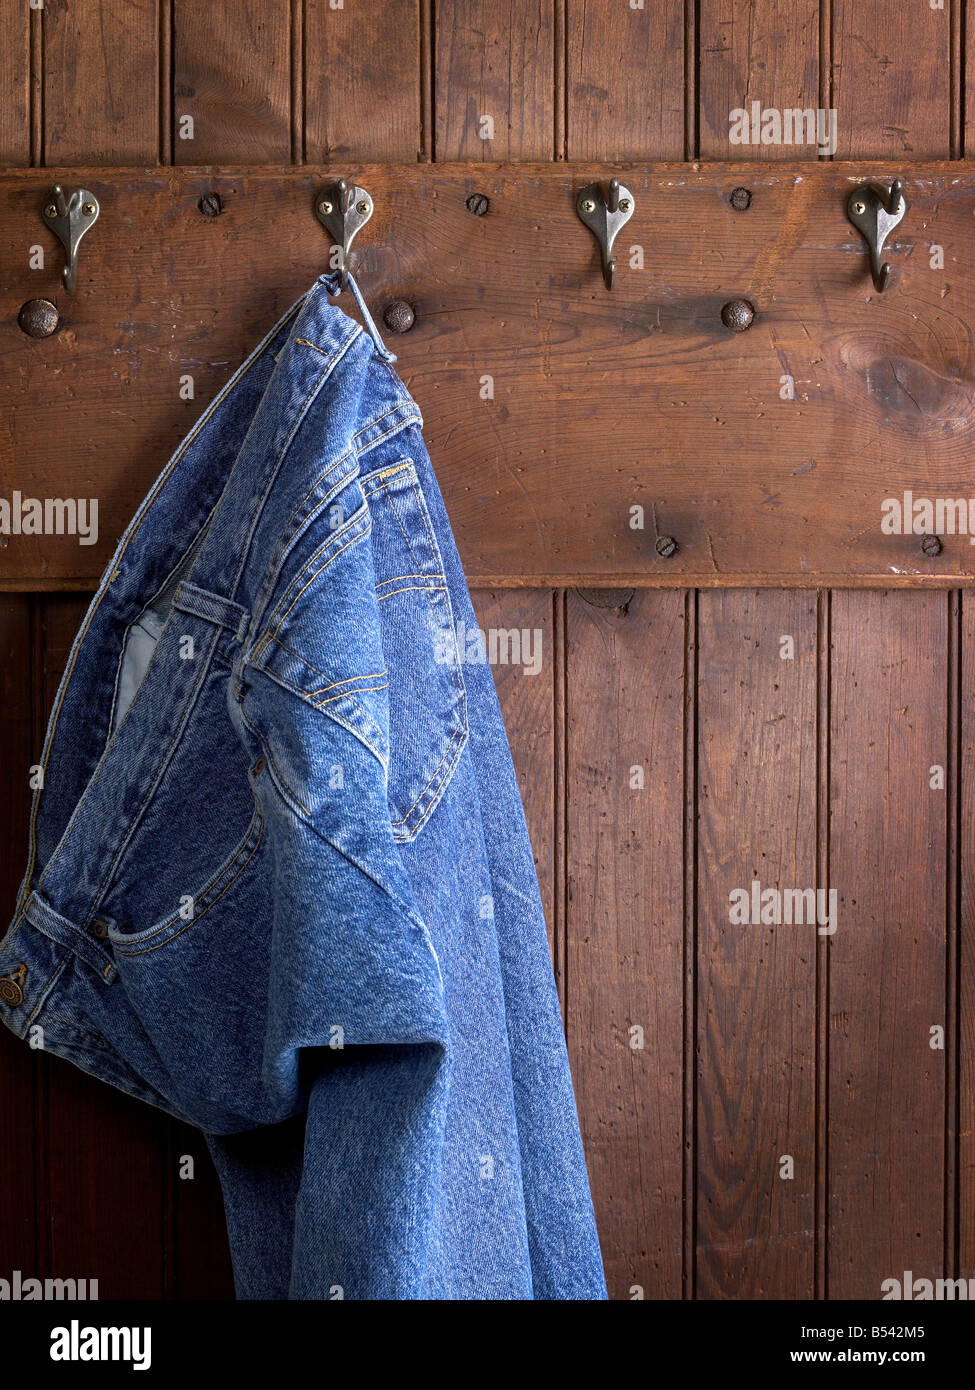 Blue Jeans Hanging On Hook Weathered Wood Wall Stock Photo